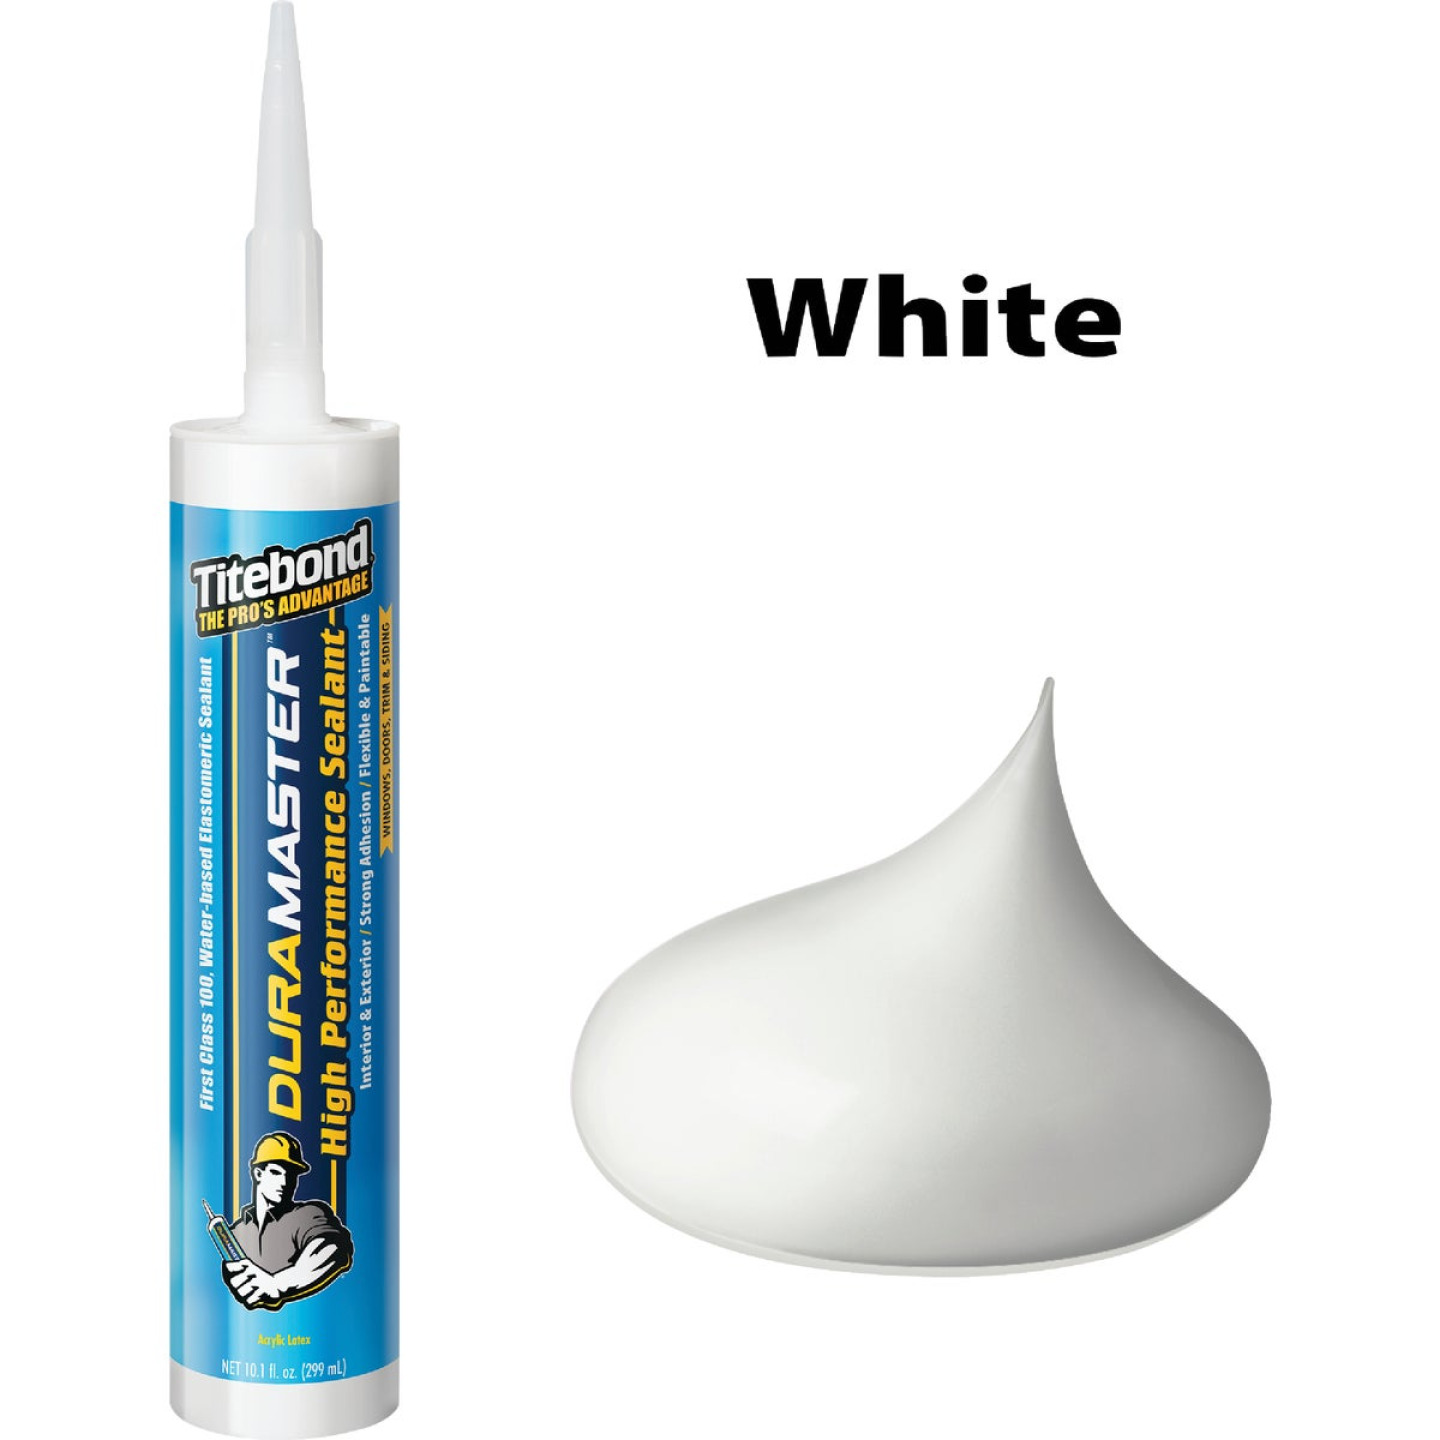 Titebond DuraMaster Sealant 10.1 Oz. Cartridge, White Image 1